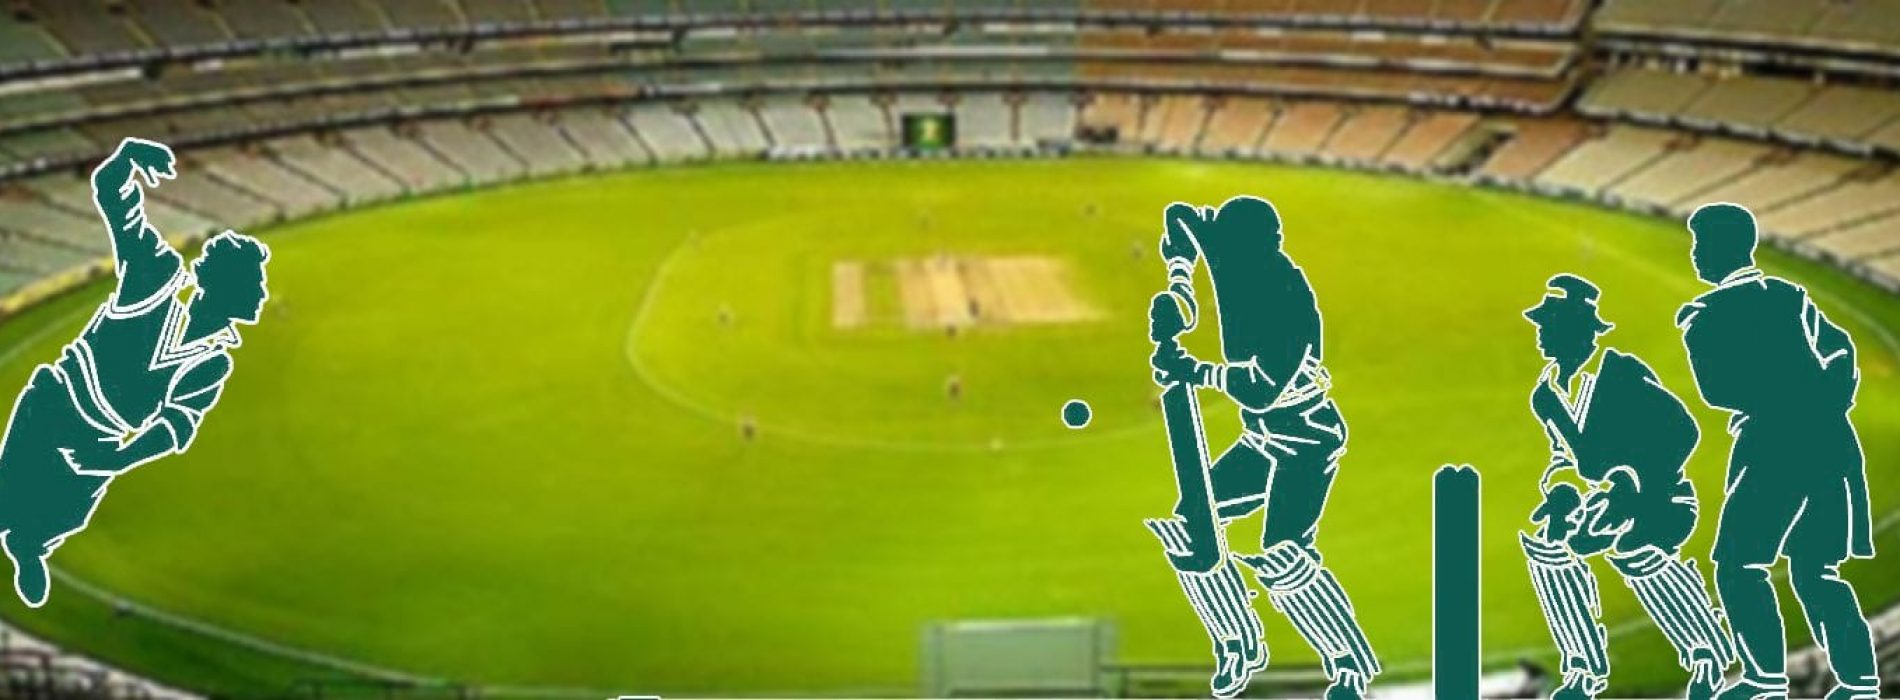 Match prediction – Predict and earn